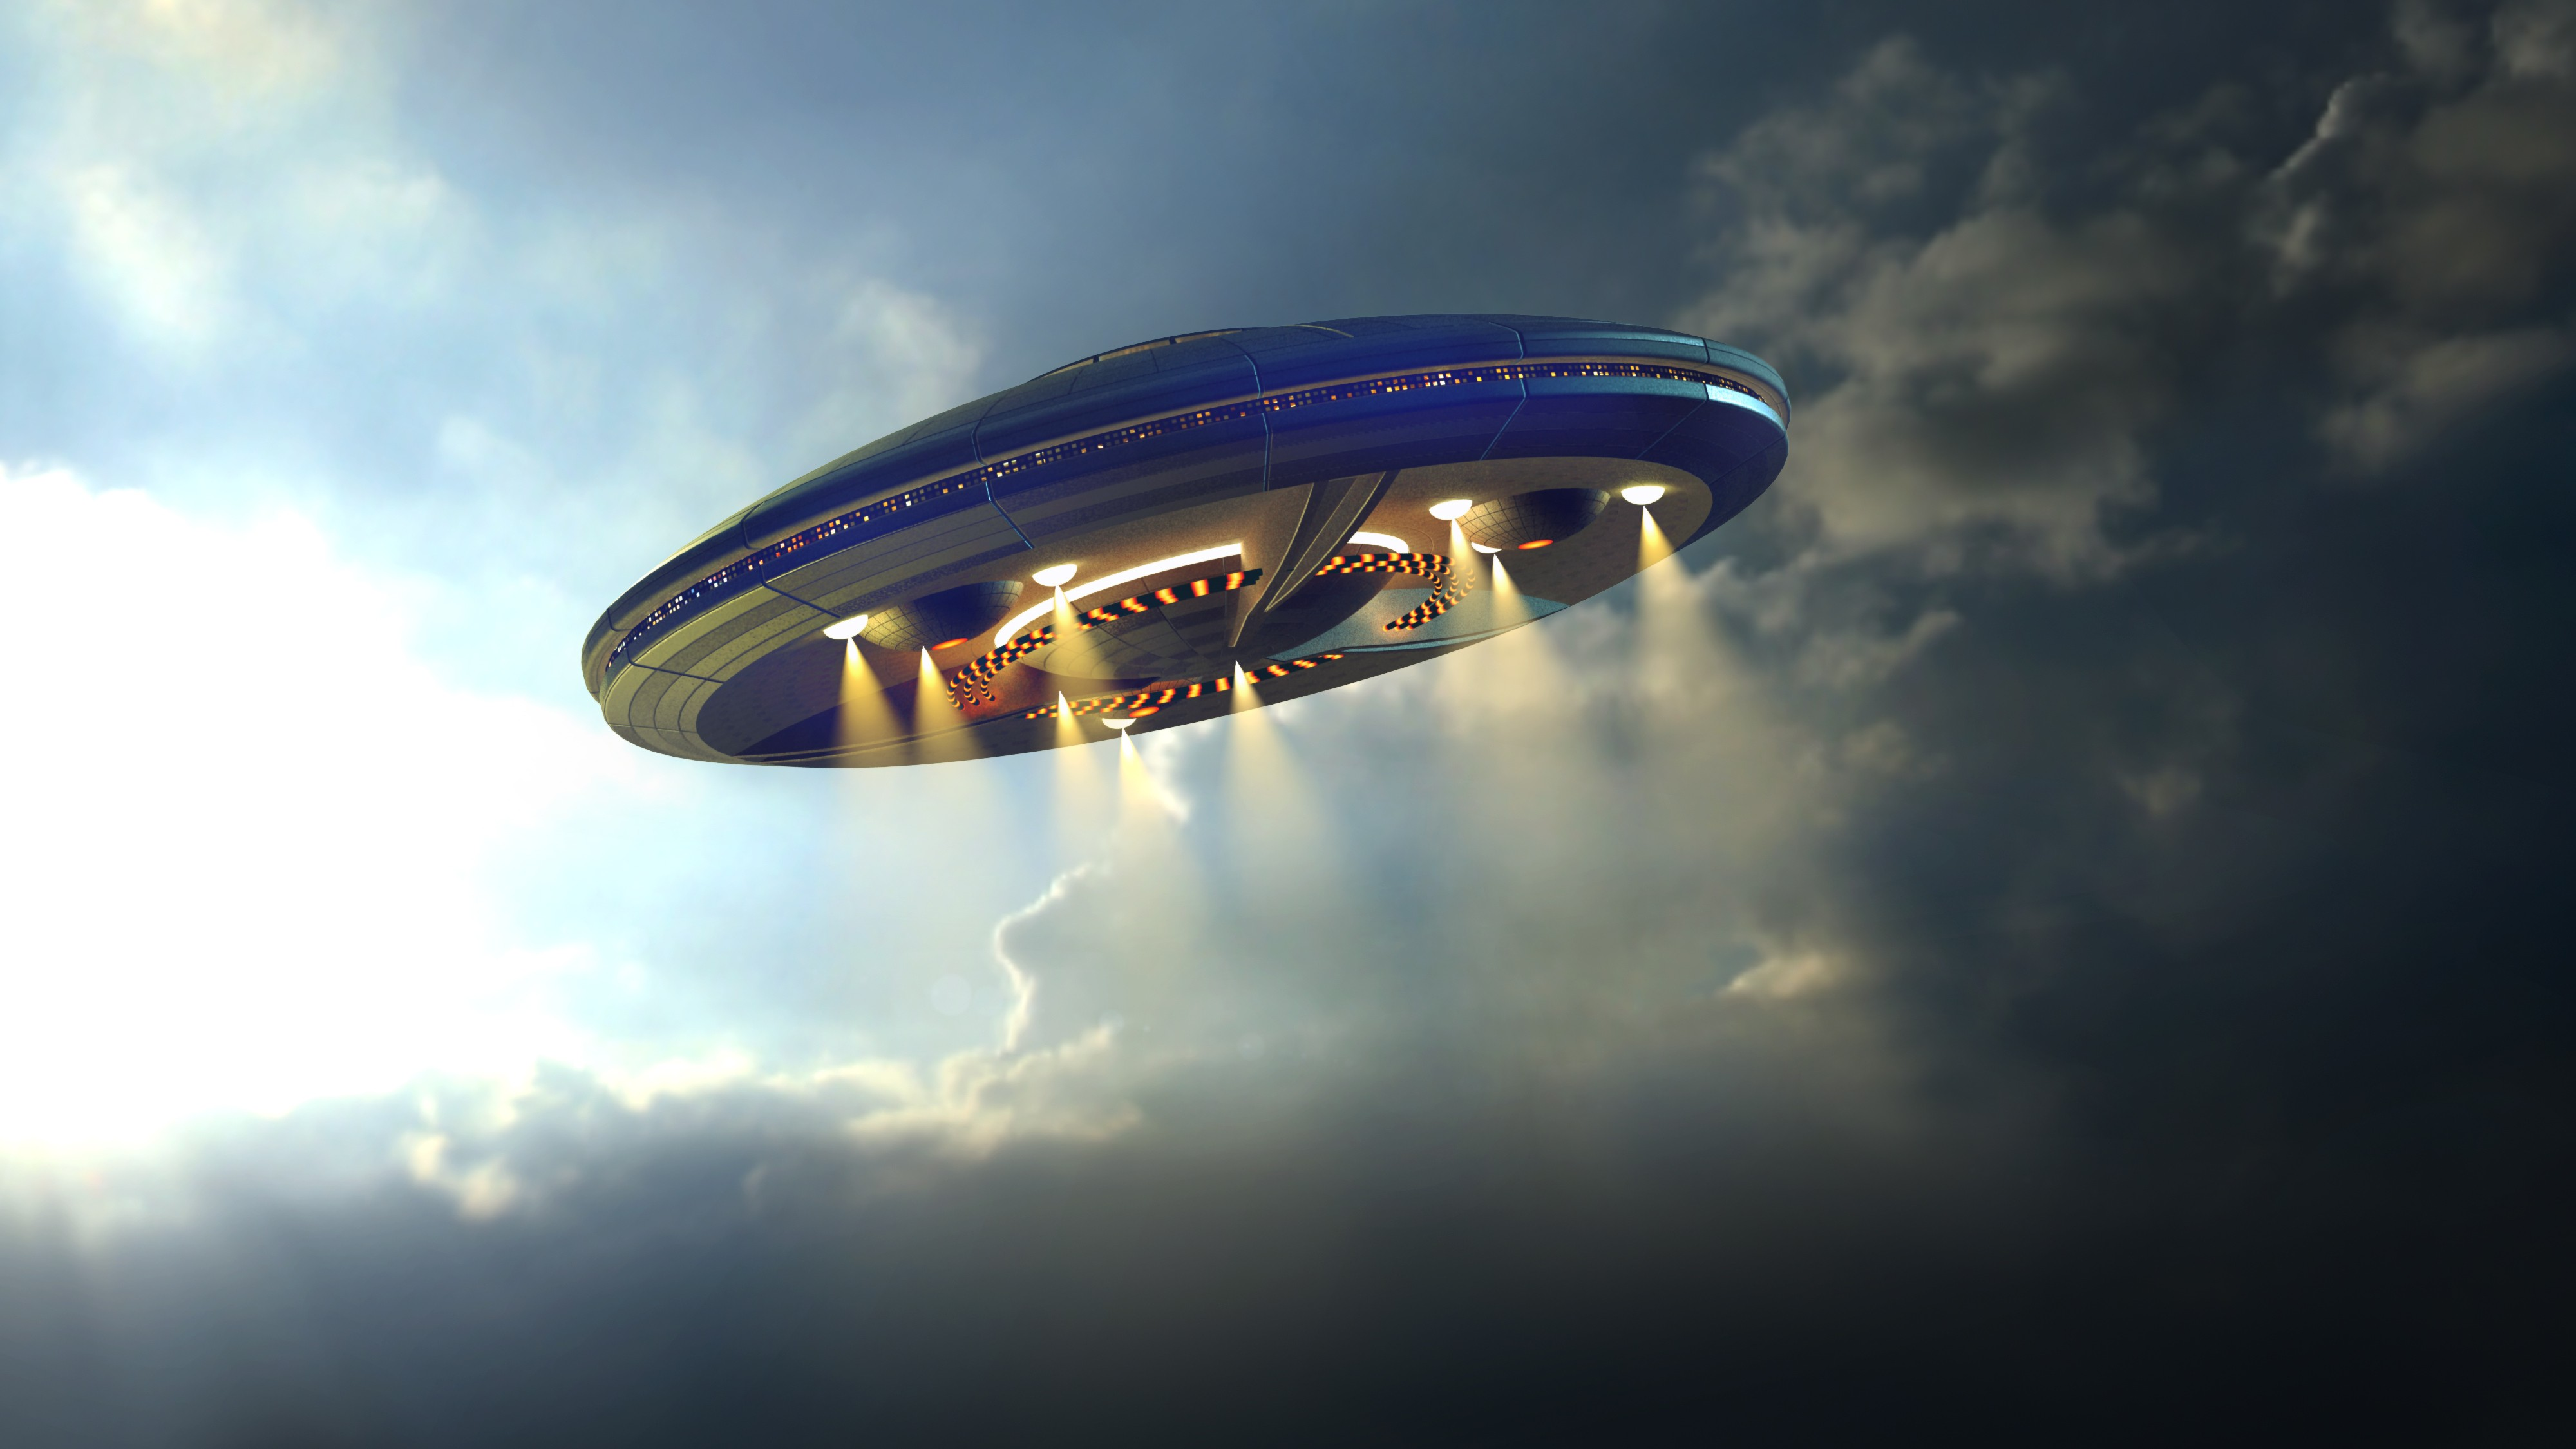 Alien UFO saucer flying on a clouds background above Earth